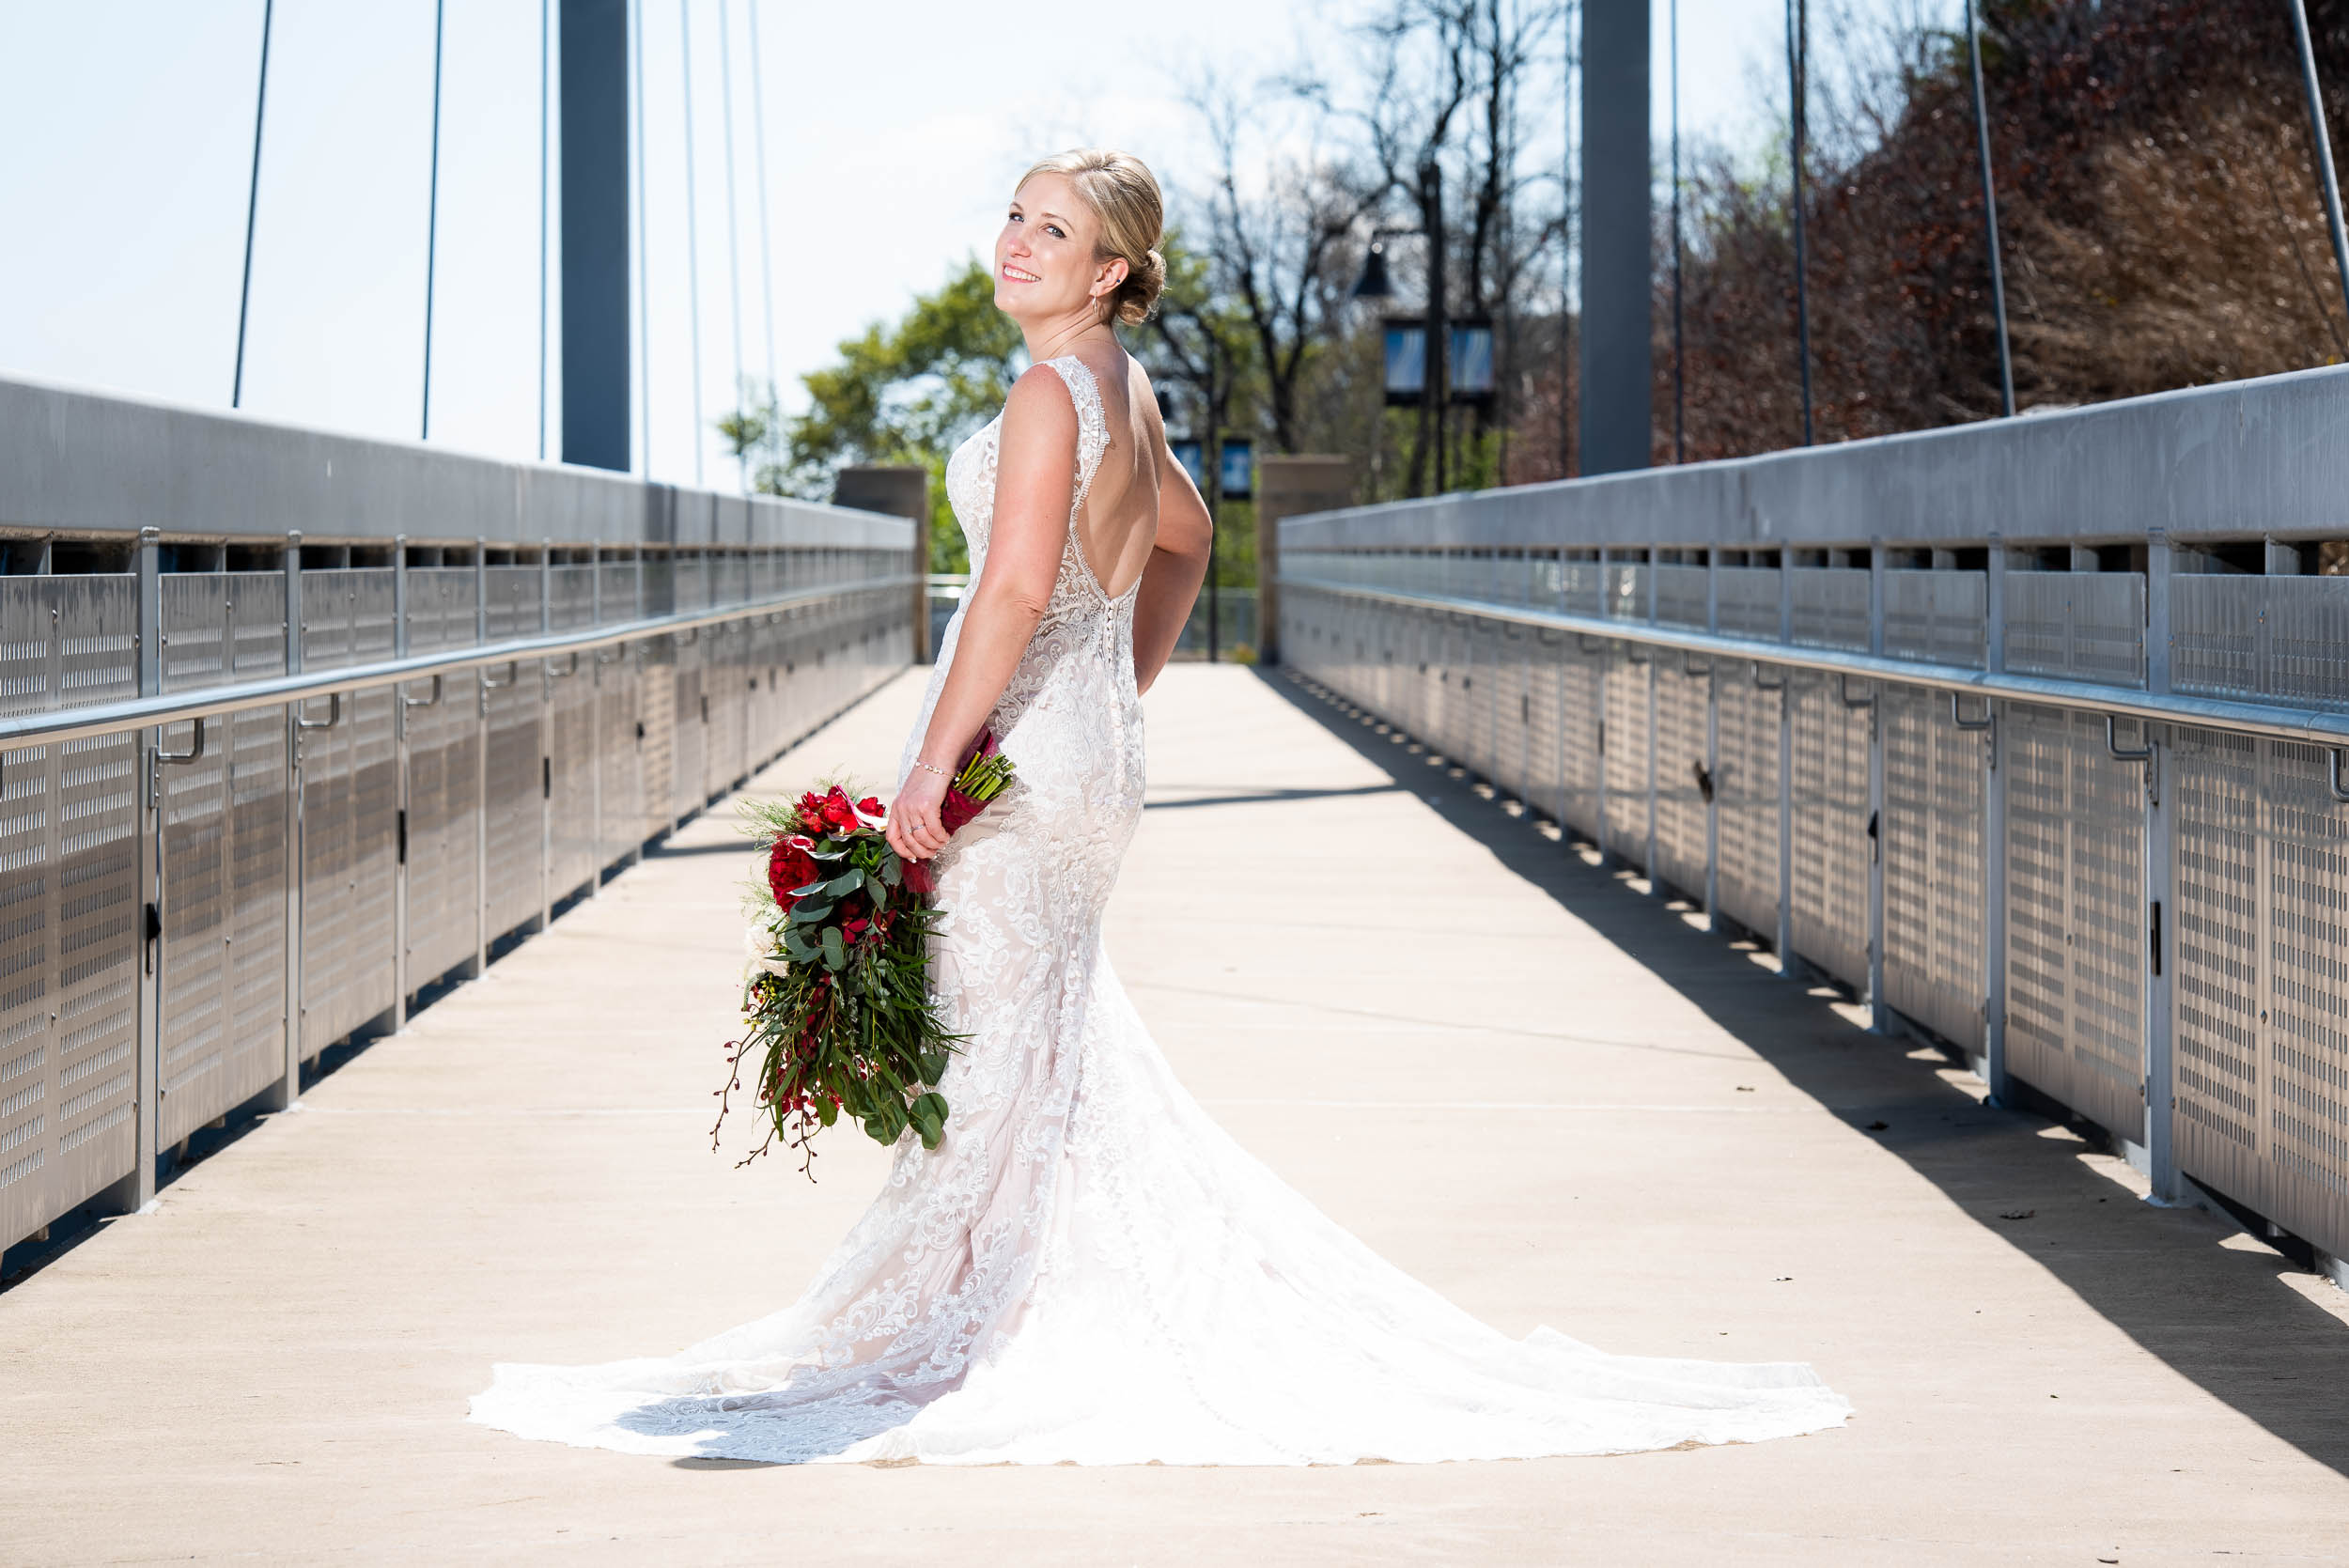 Bridal portrait: Modern industrial Chicago wedding inside Prairie Street Brewhouse captured by J. Brown Photography. Find more wedding ideas at jbrownphotography.com!